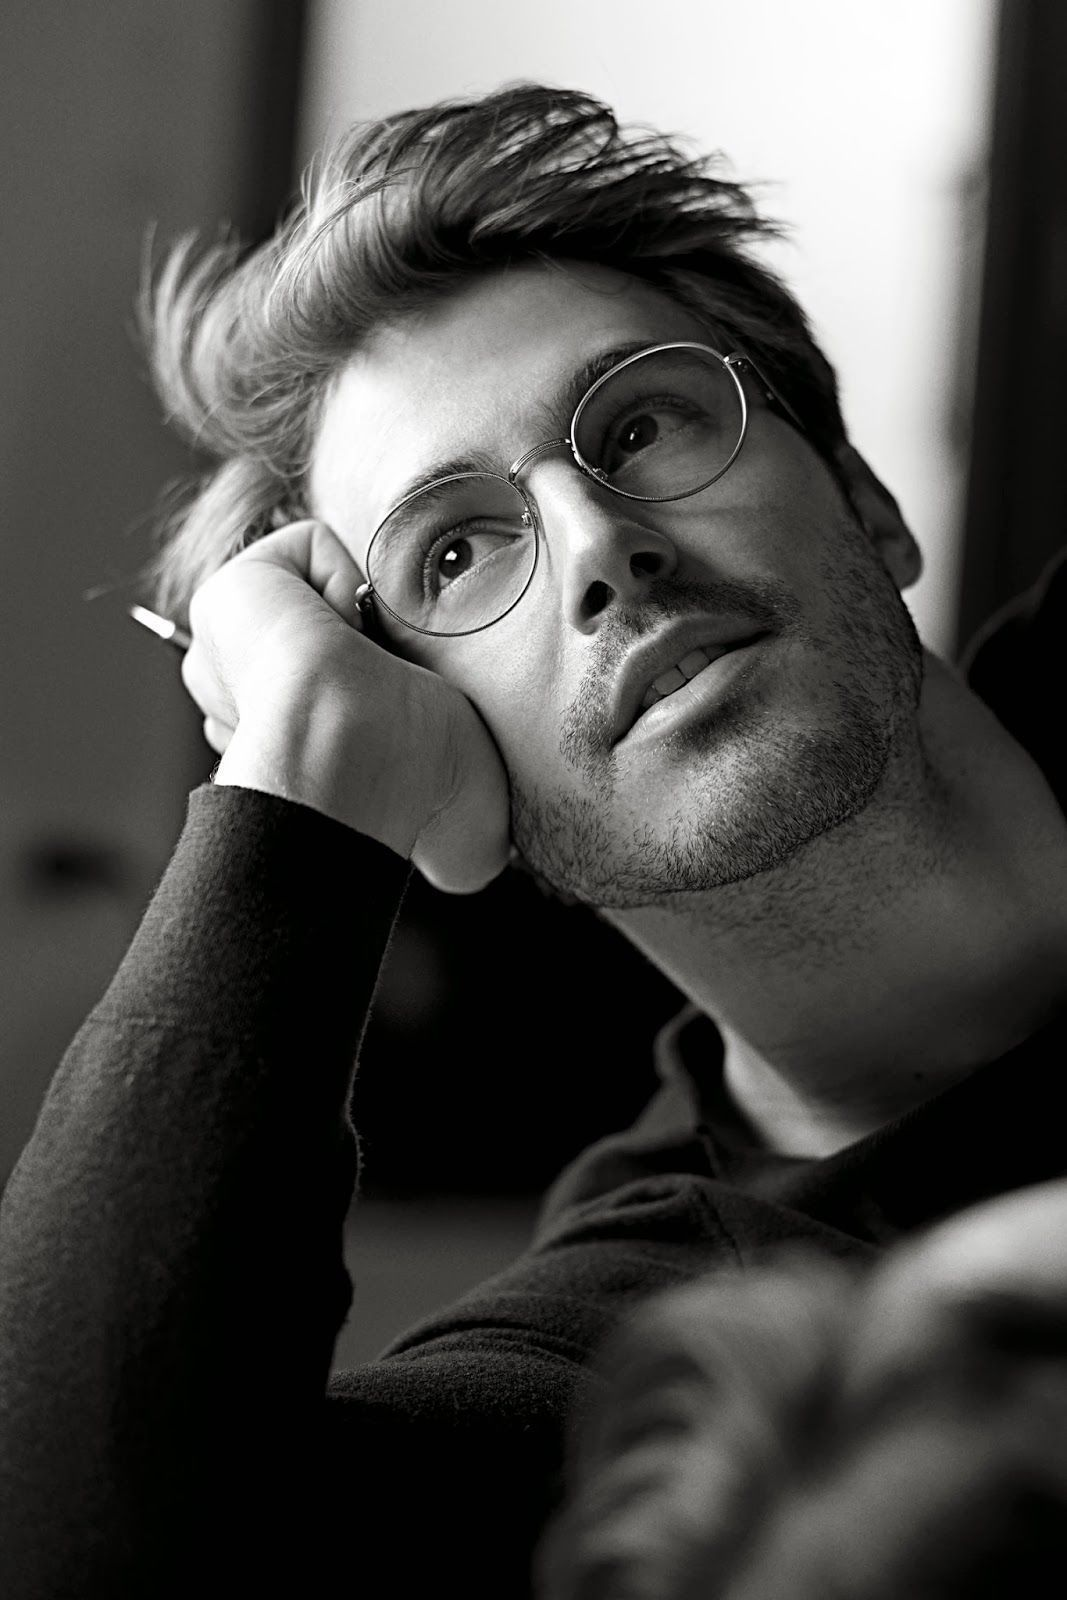 49 Vintage Eyeglasses for Men To Go In Style People generally recognize you by your face. And the eyeglasses that you wear are a very real part of your [\u2026]